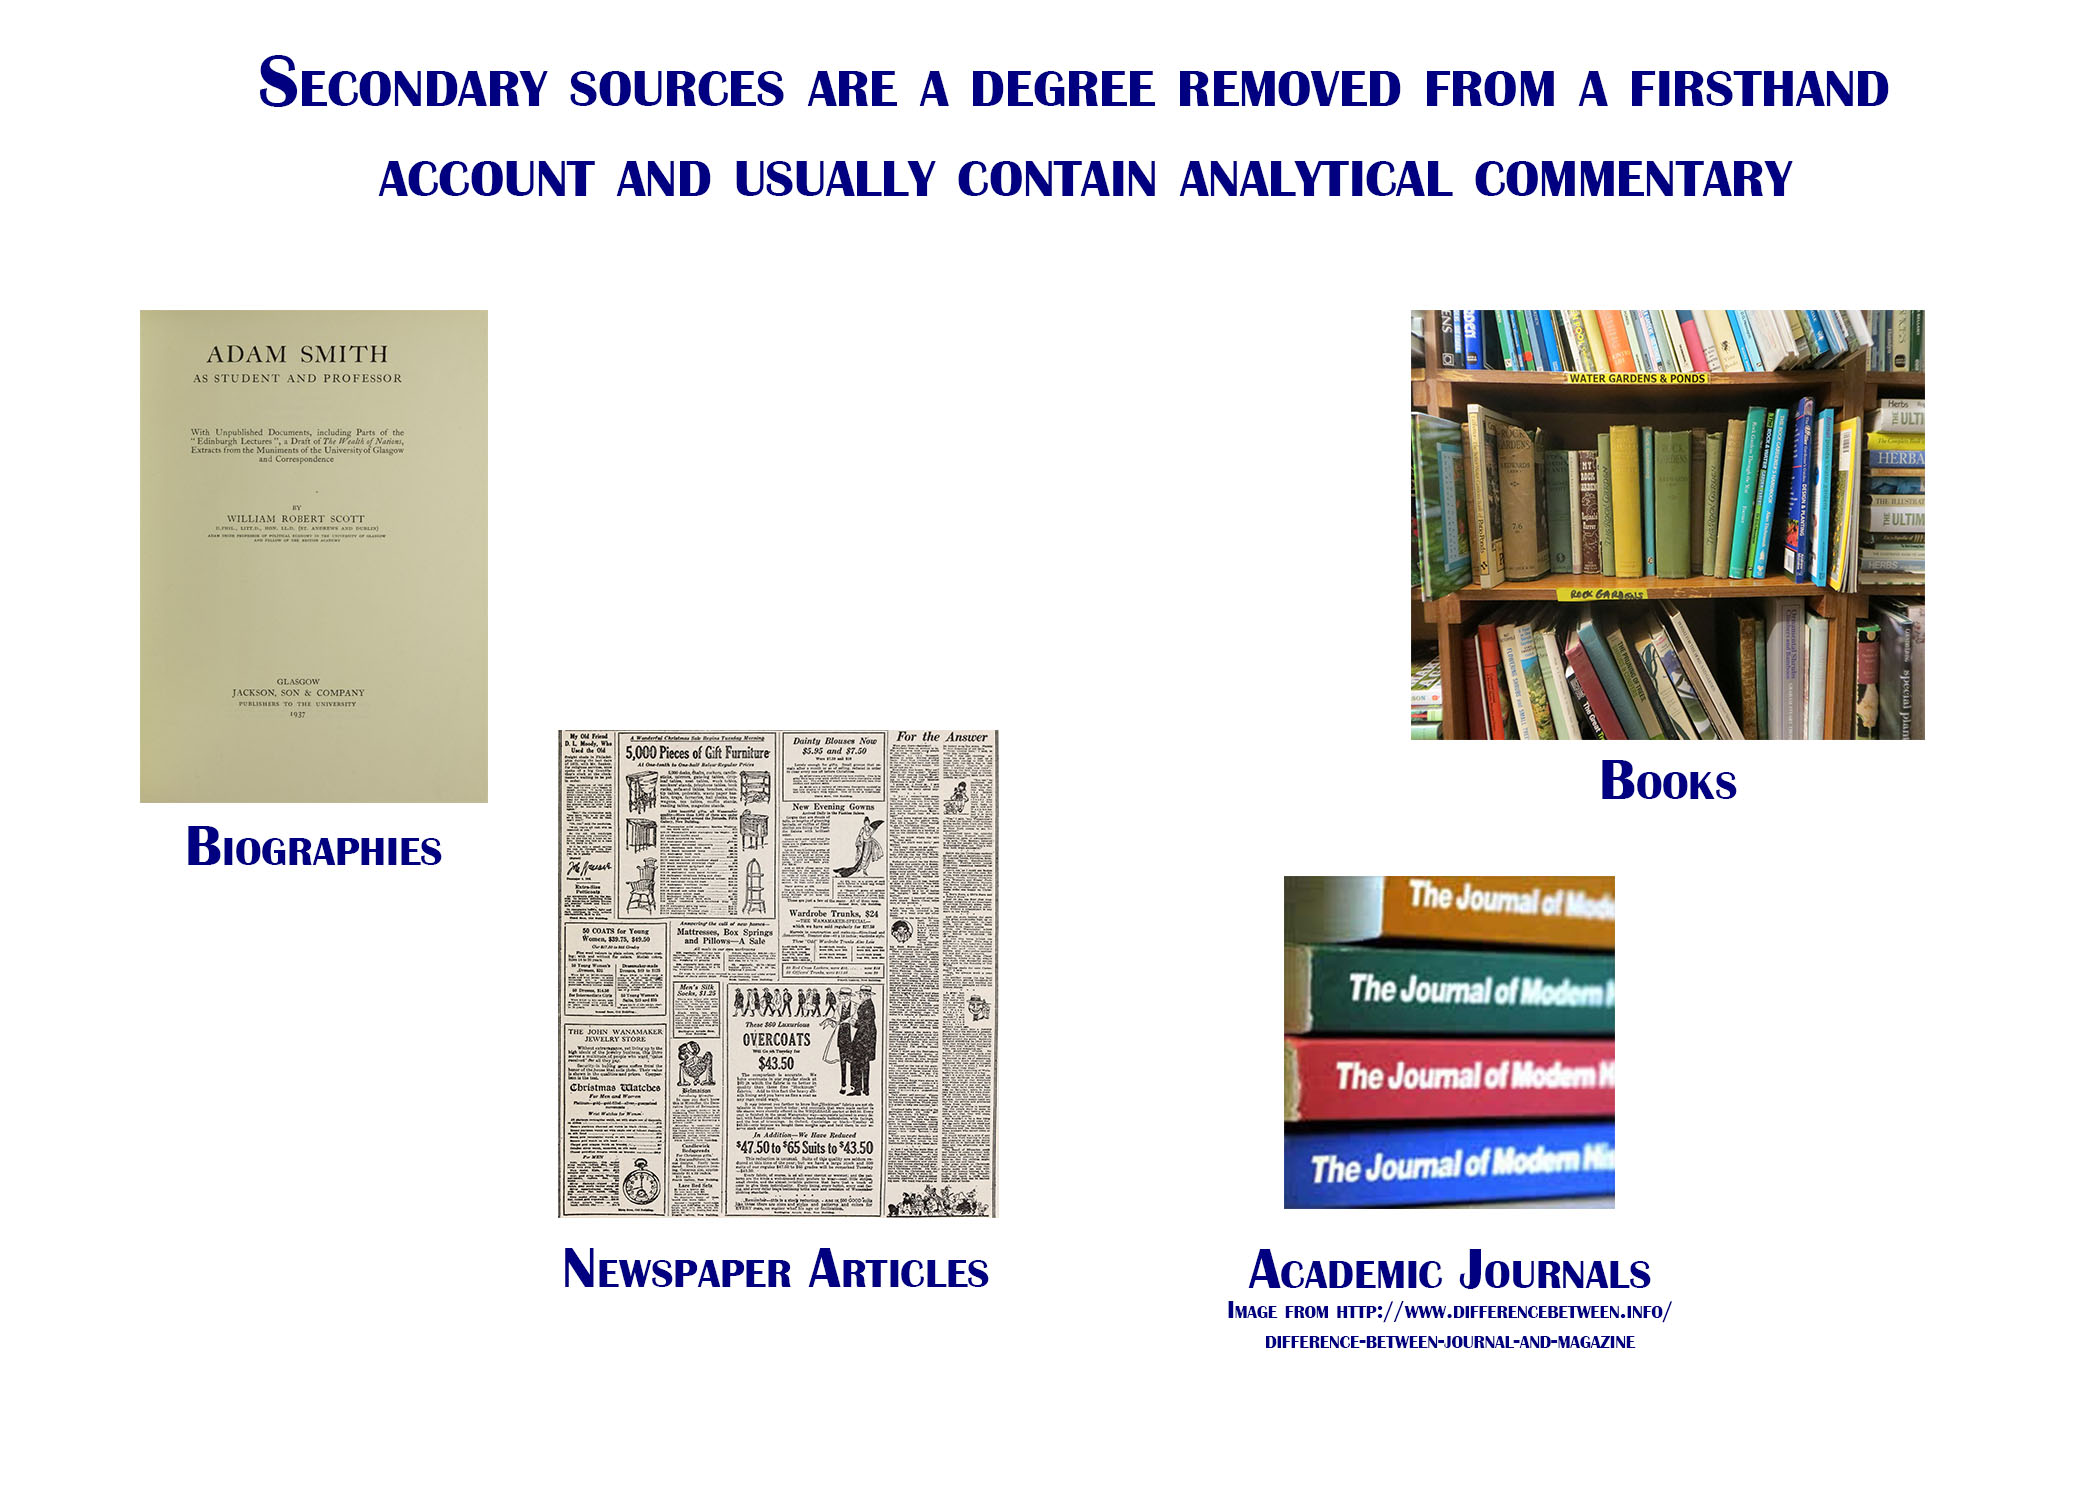 Secondary sources are a degree removed from a firsthand account and usually contain analytical commentary